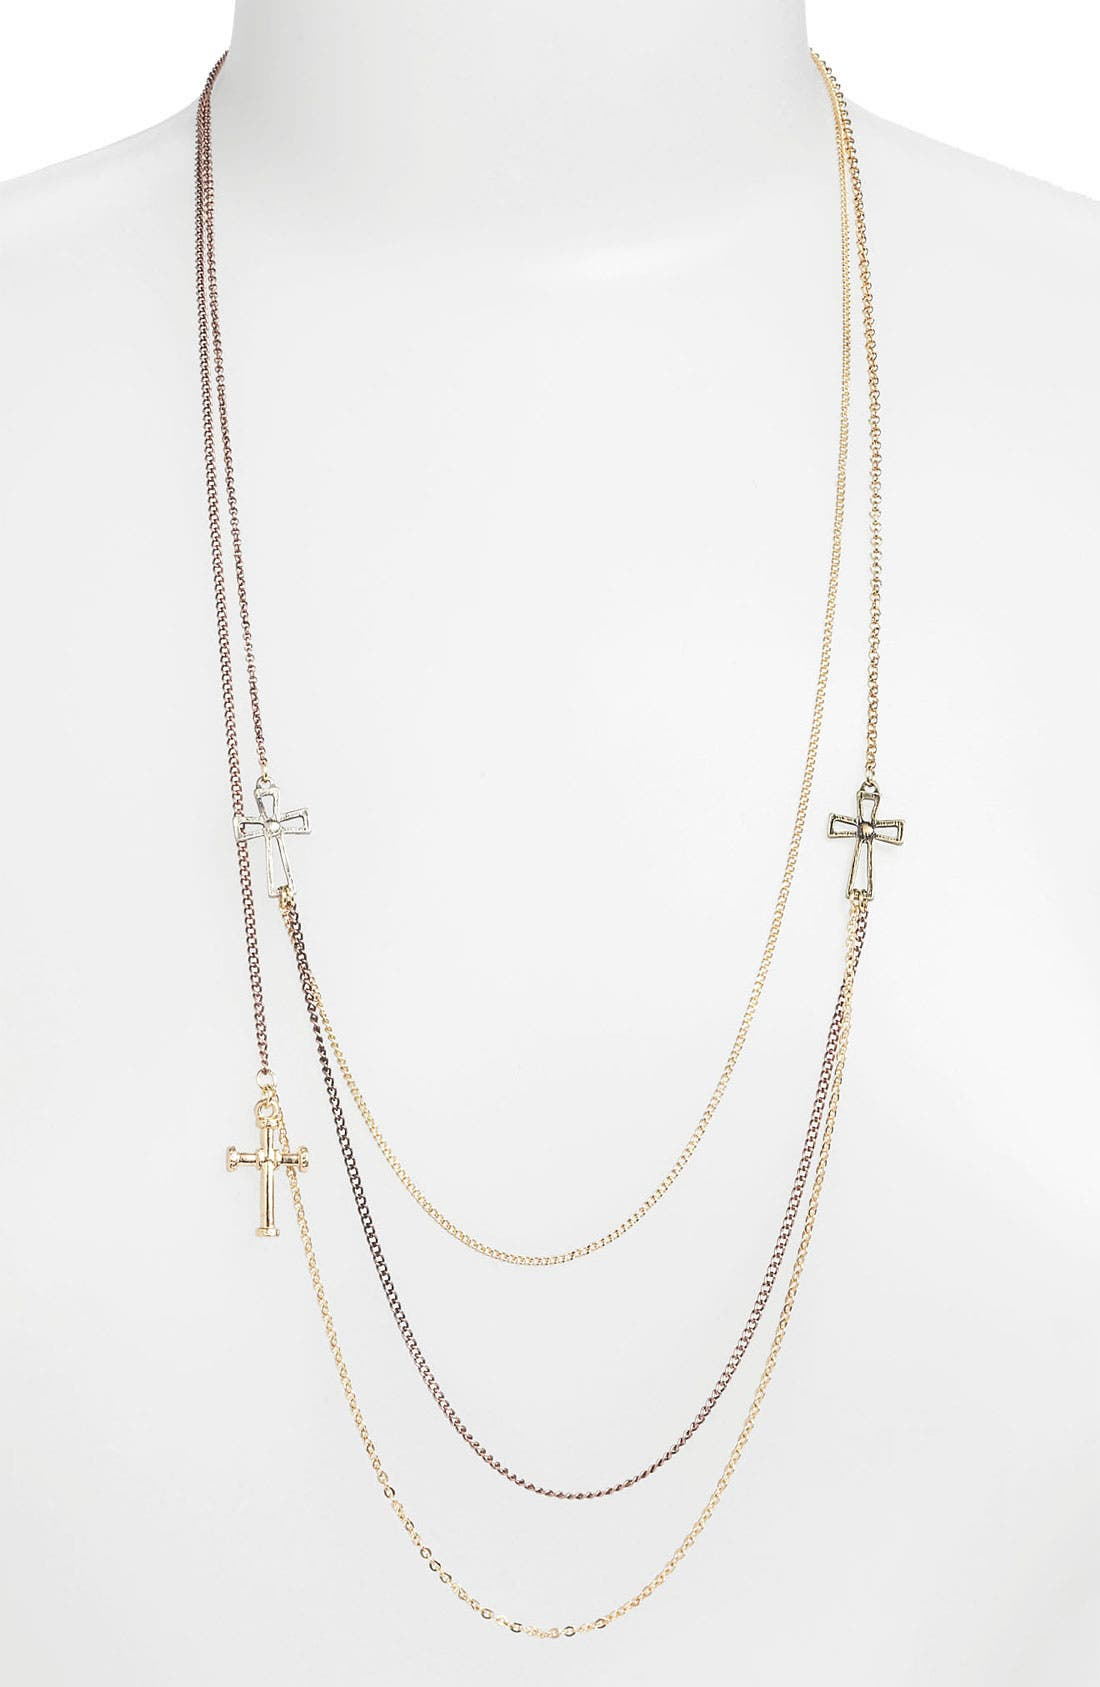 Main Image - Stephan & Co. Layered Cross Necklace